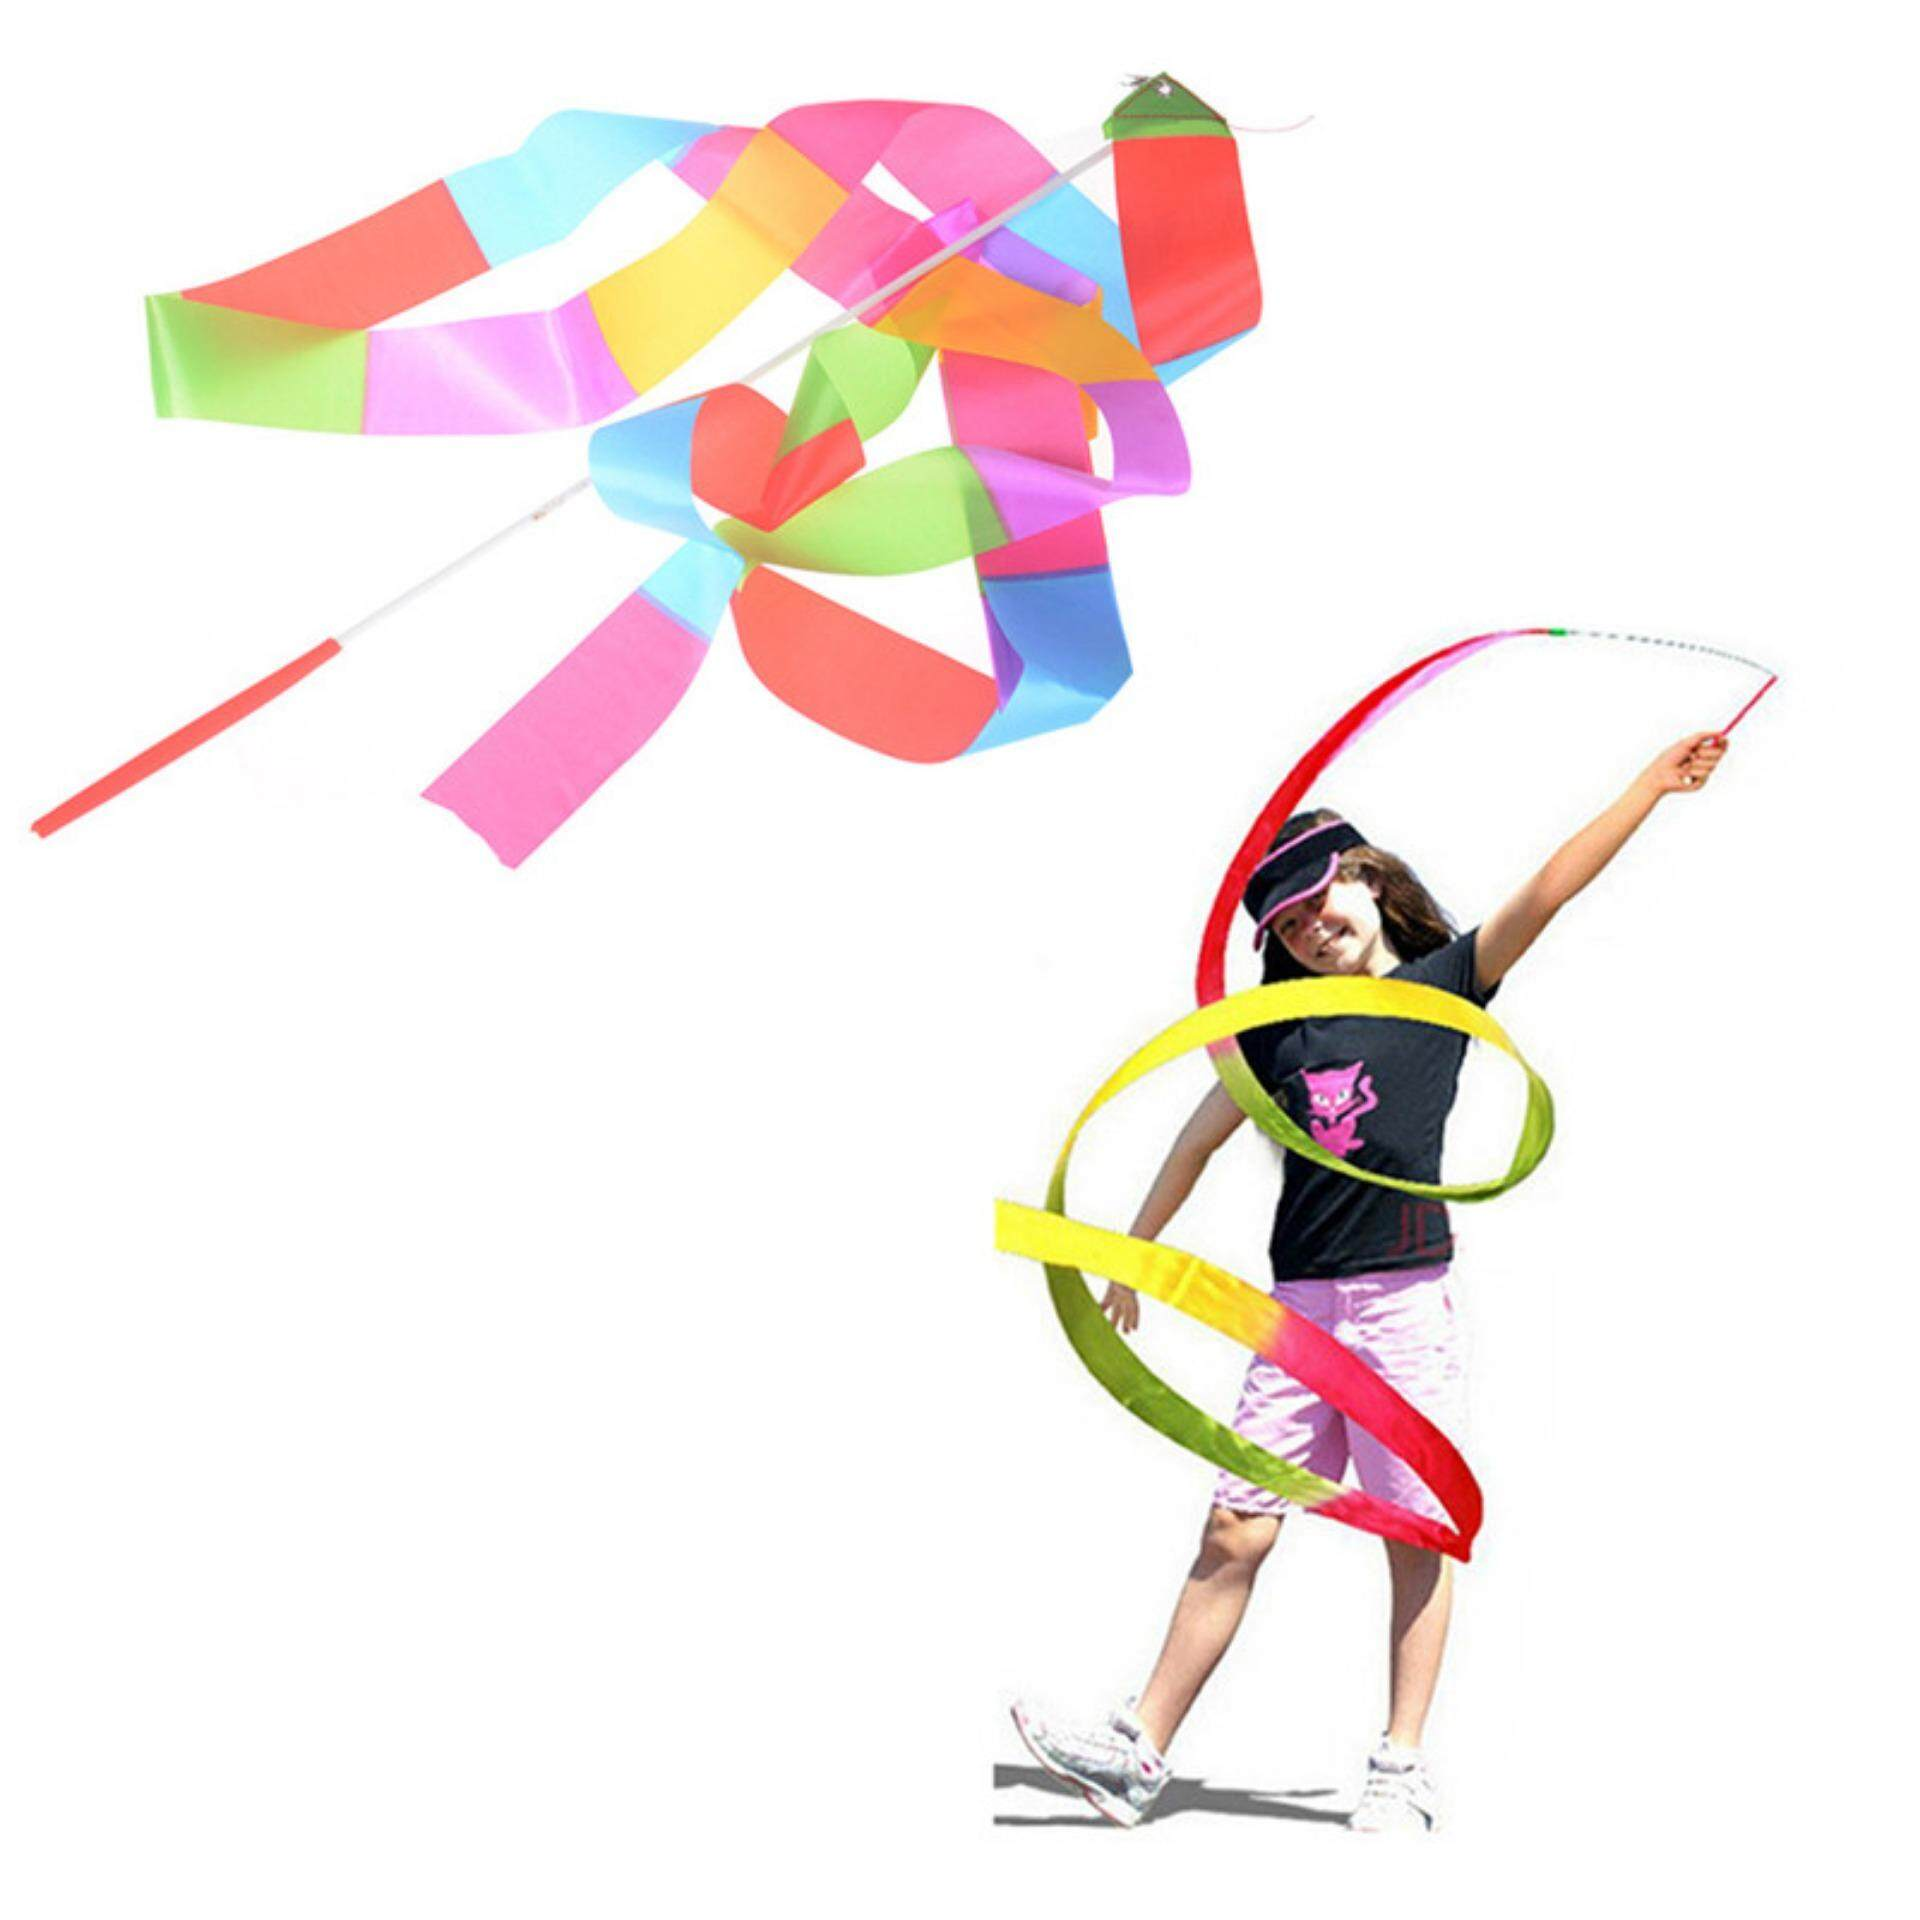 Veli Shy Popular Colorful 4m Ribbon Toy Gymnastics Dance Dancer Toy Kid Outdoor Sport Toy By Veli Shy.